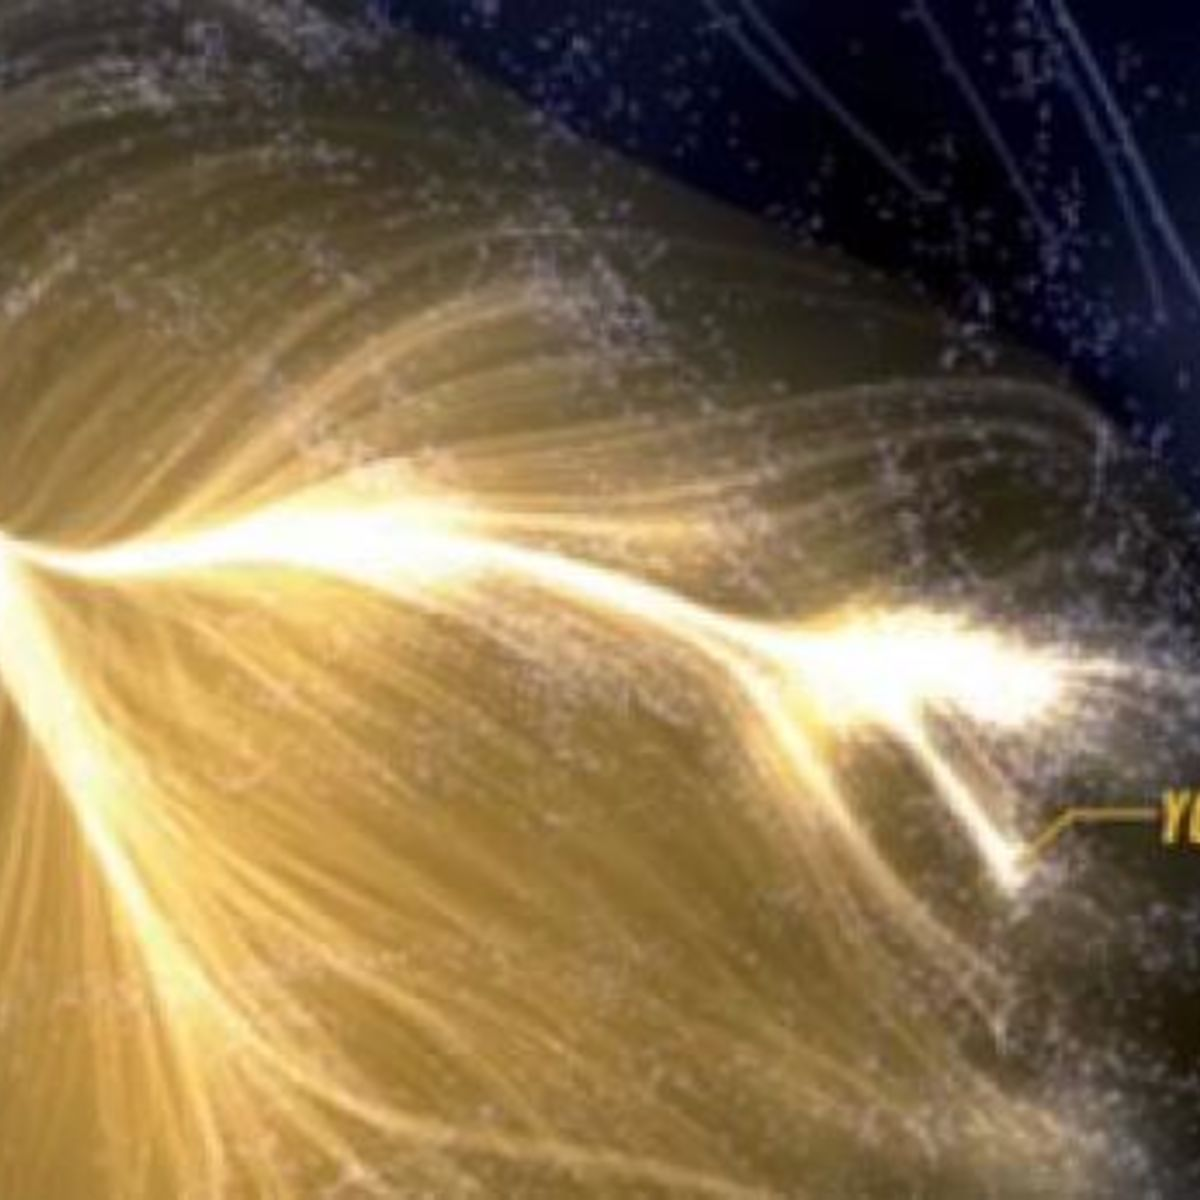 laniakea_354.jpg.CROP.rectangle-large.jpg